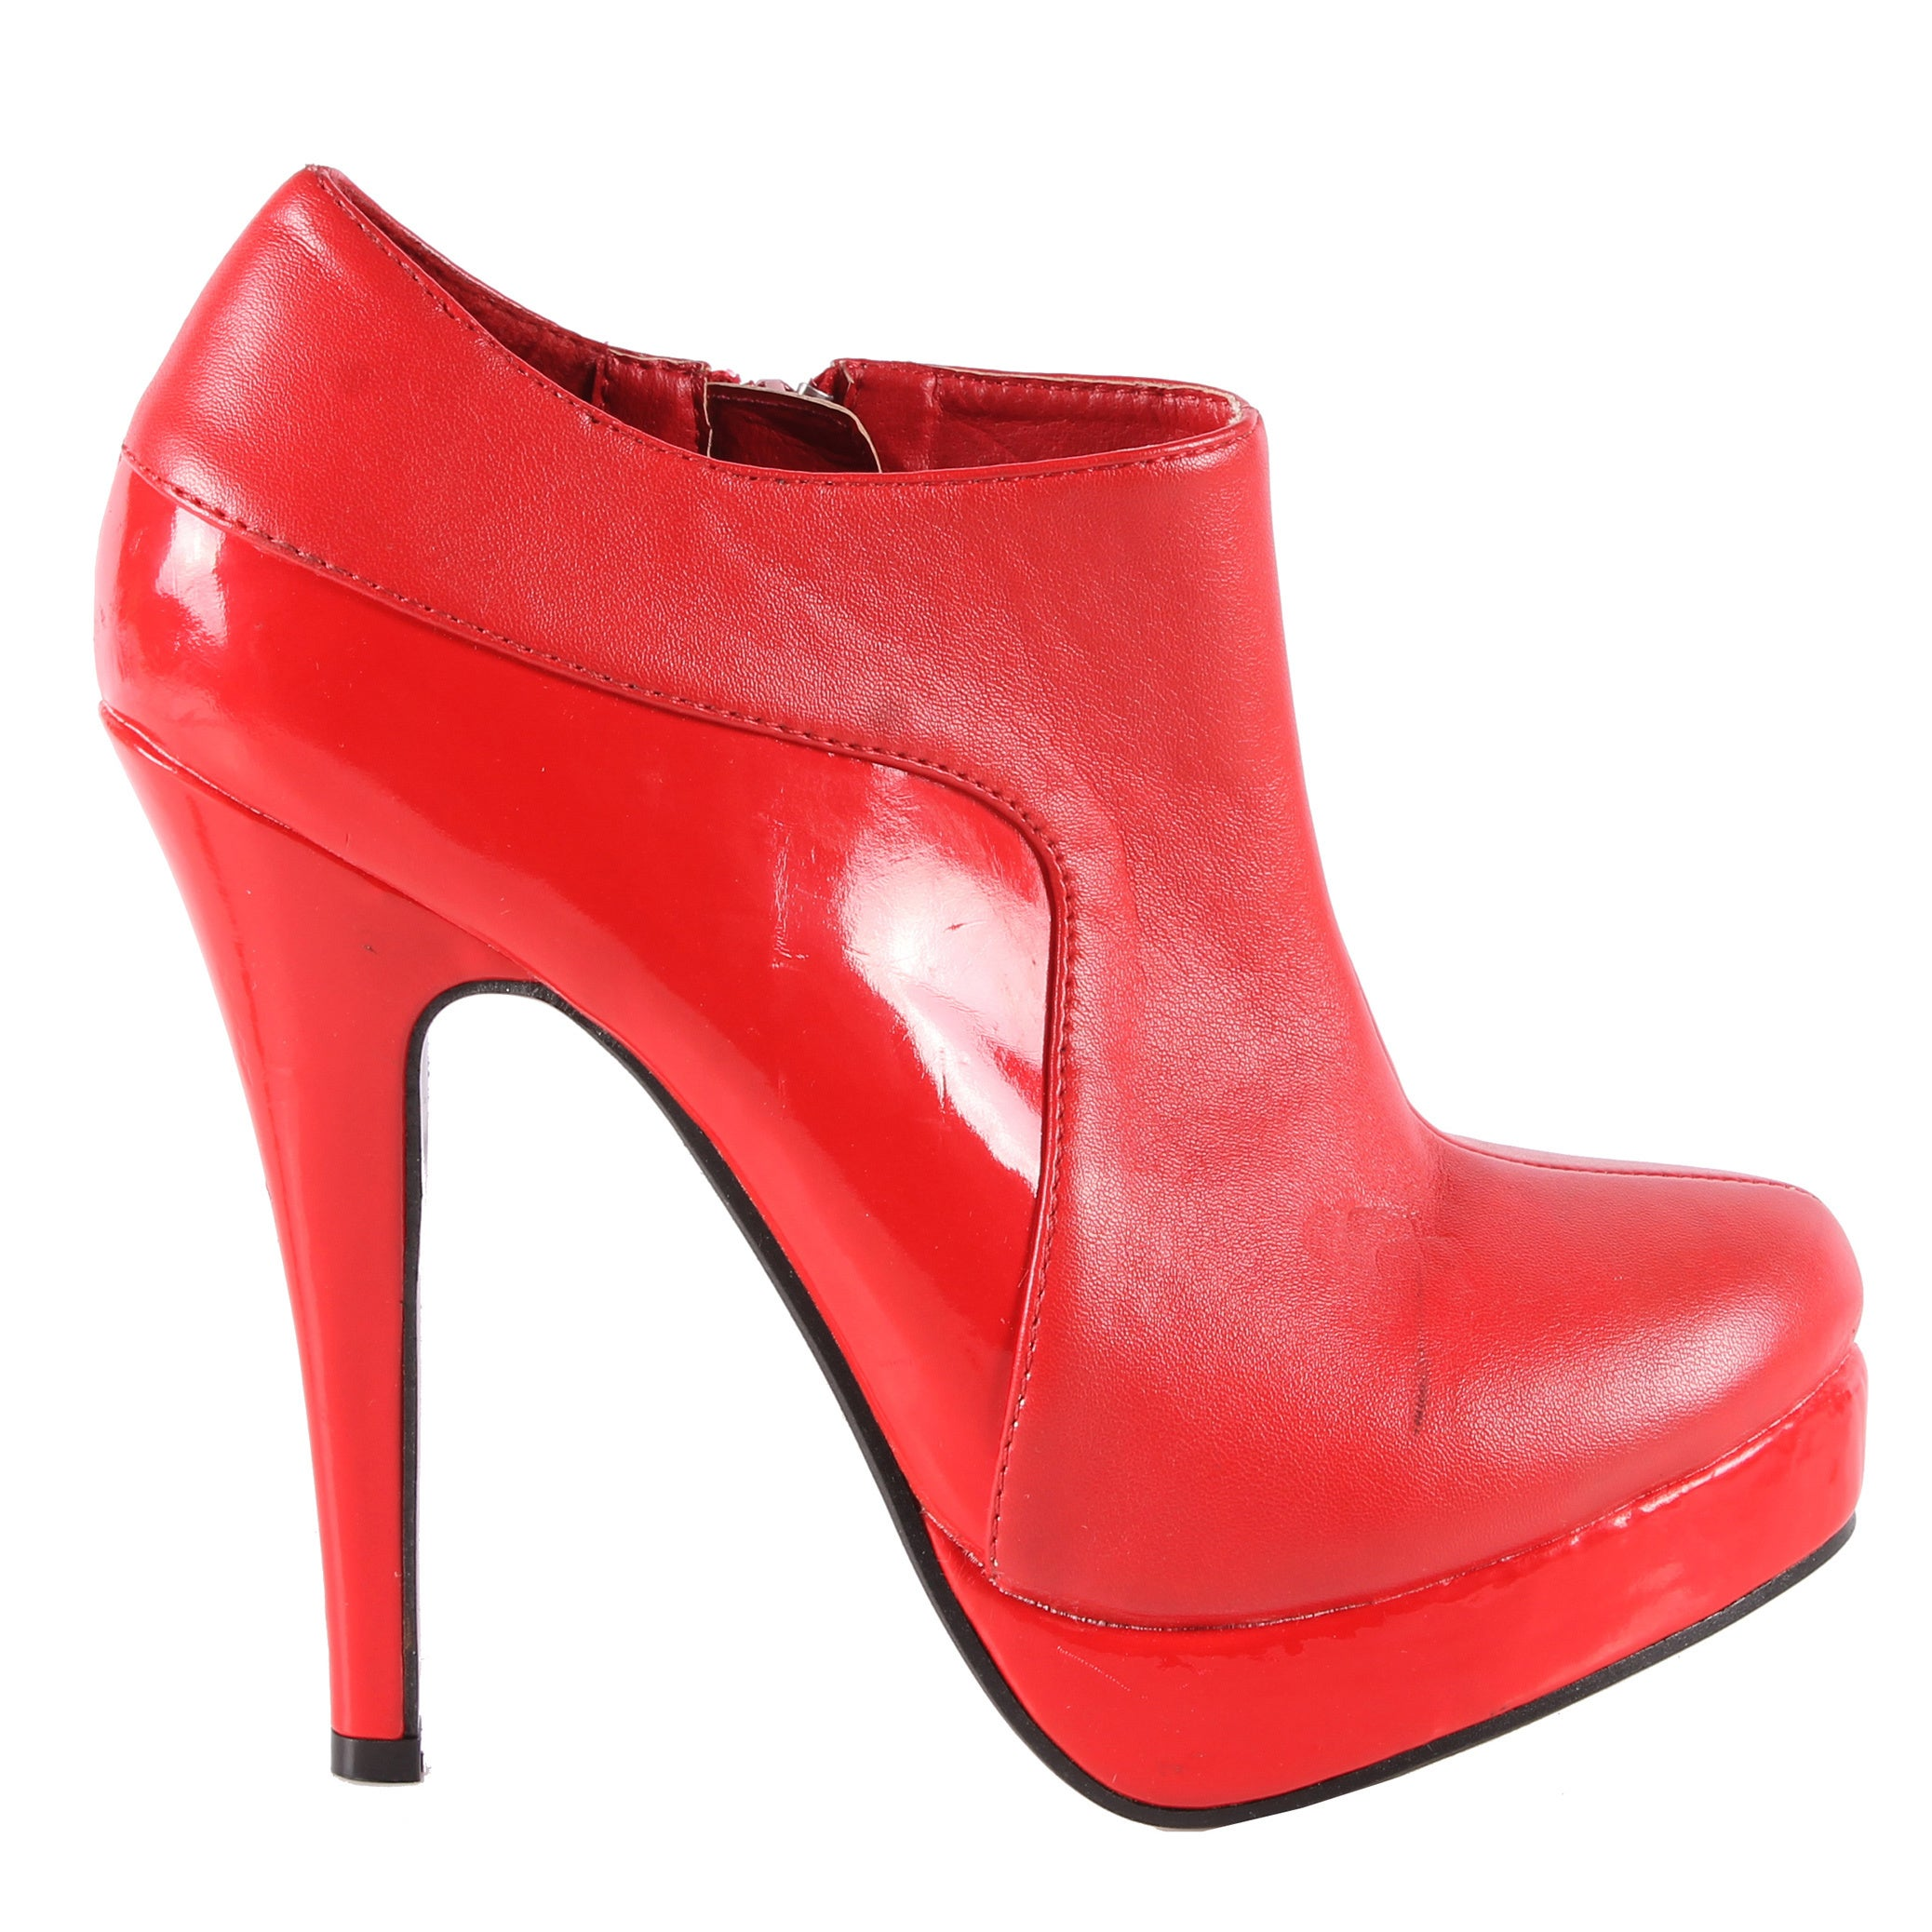 Overstock.com Jacobies by Beston Women's 'Sophia-45' Red Stiletto Ankle Bootie at Sears.com